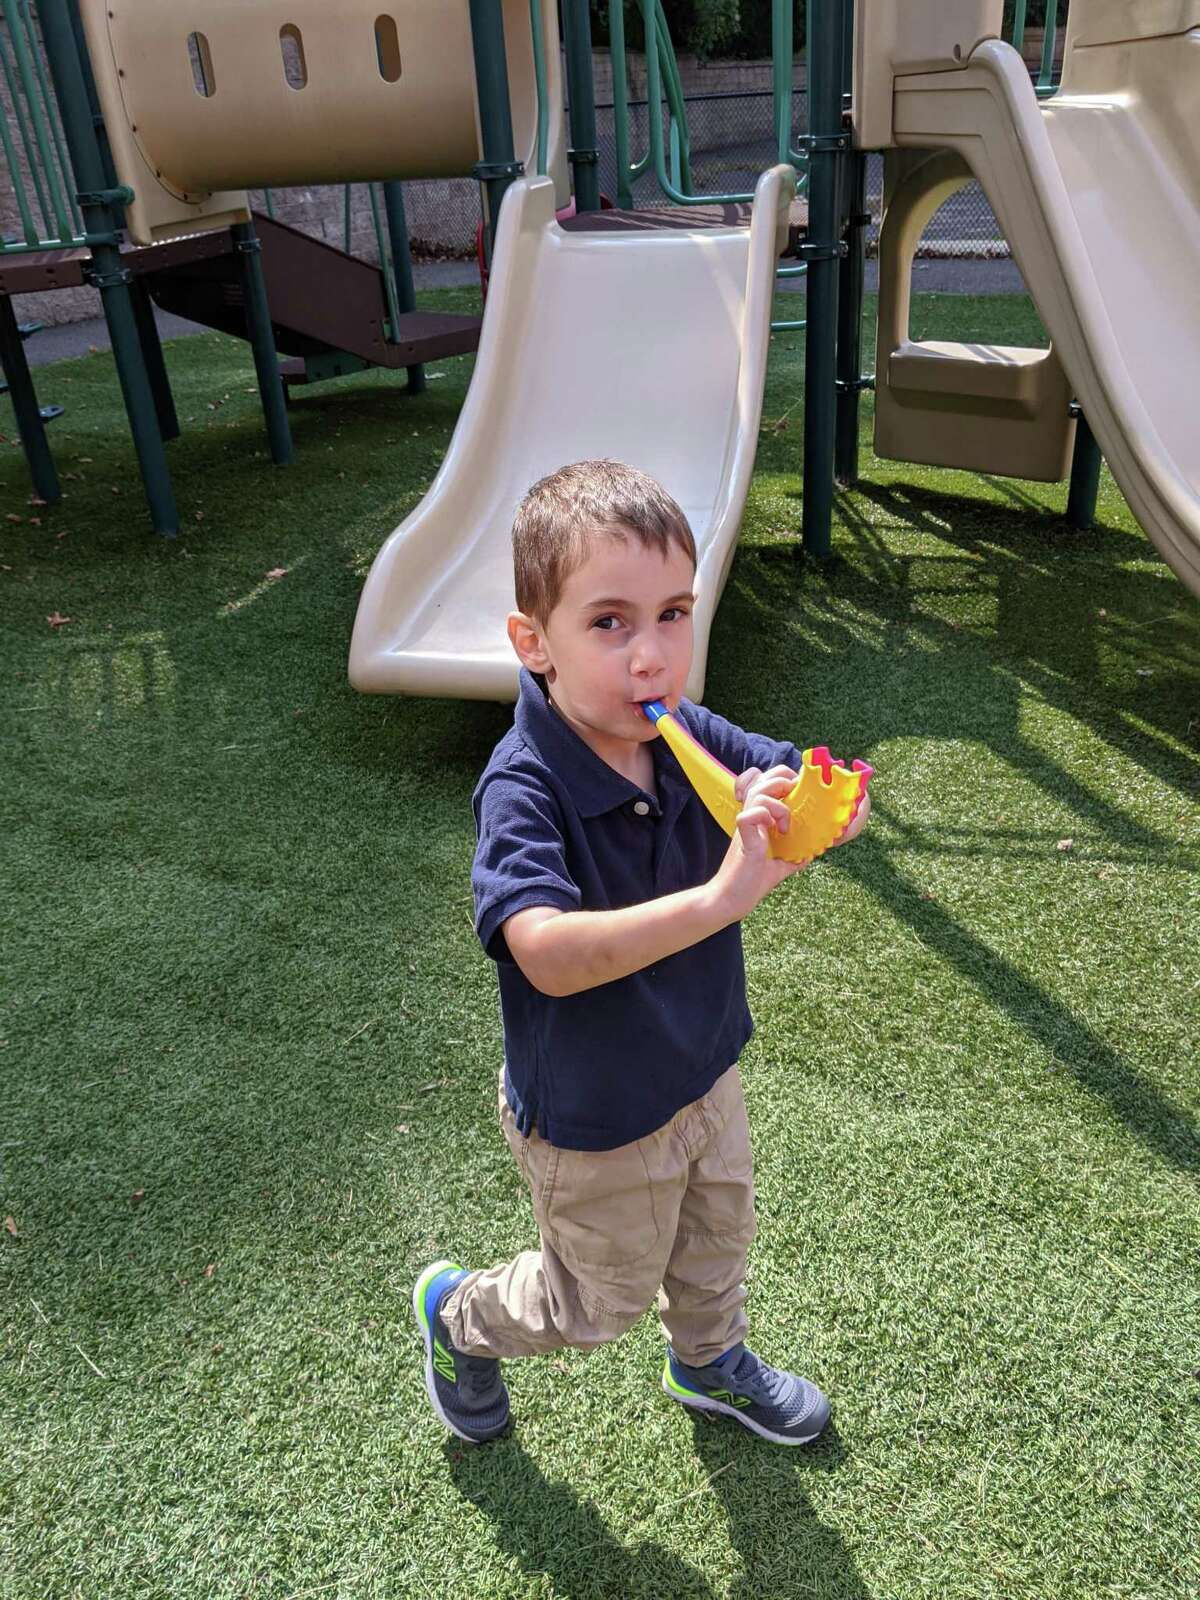 Children at B'nai Torah Nursery School blow shofars (pretend rams' horns) for Rosh Hashanah, the Jewish New Year, which began Friday, Sept. 18 at sundown. Apples and challah are dipped in honey for a sweet new year.